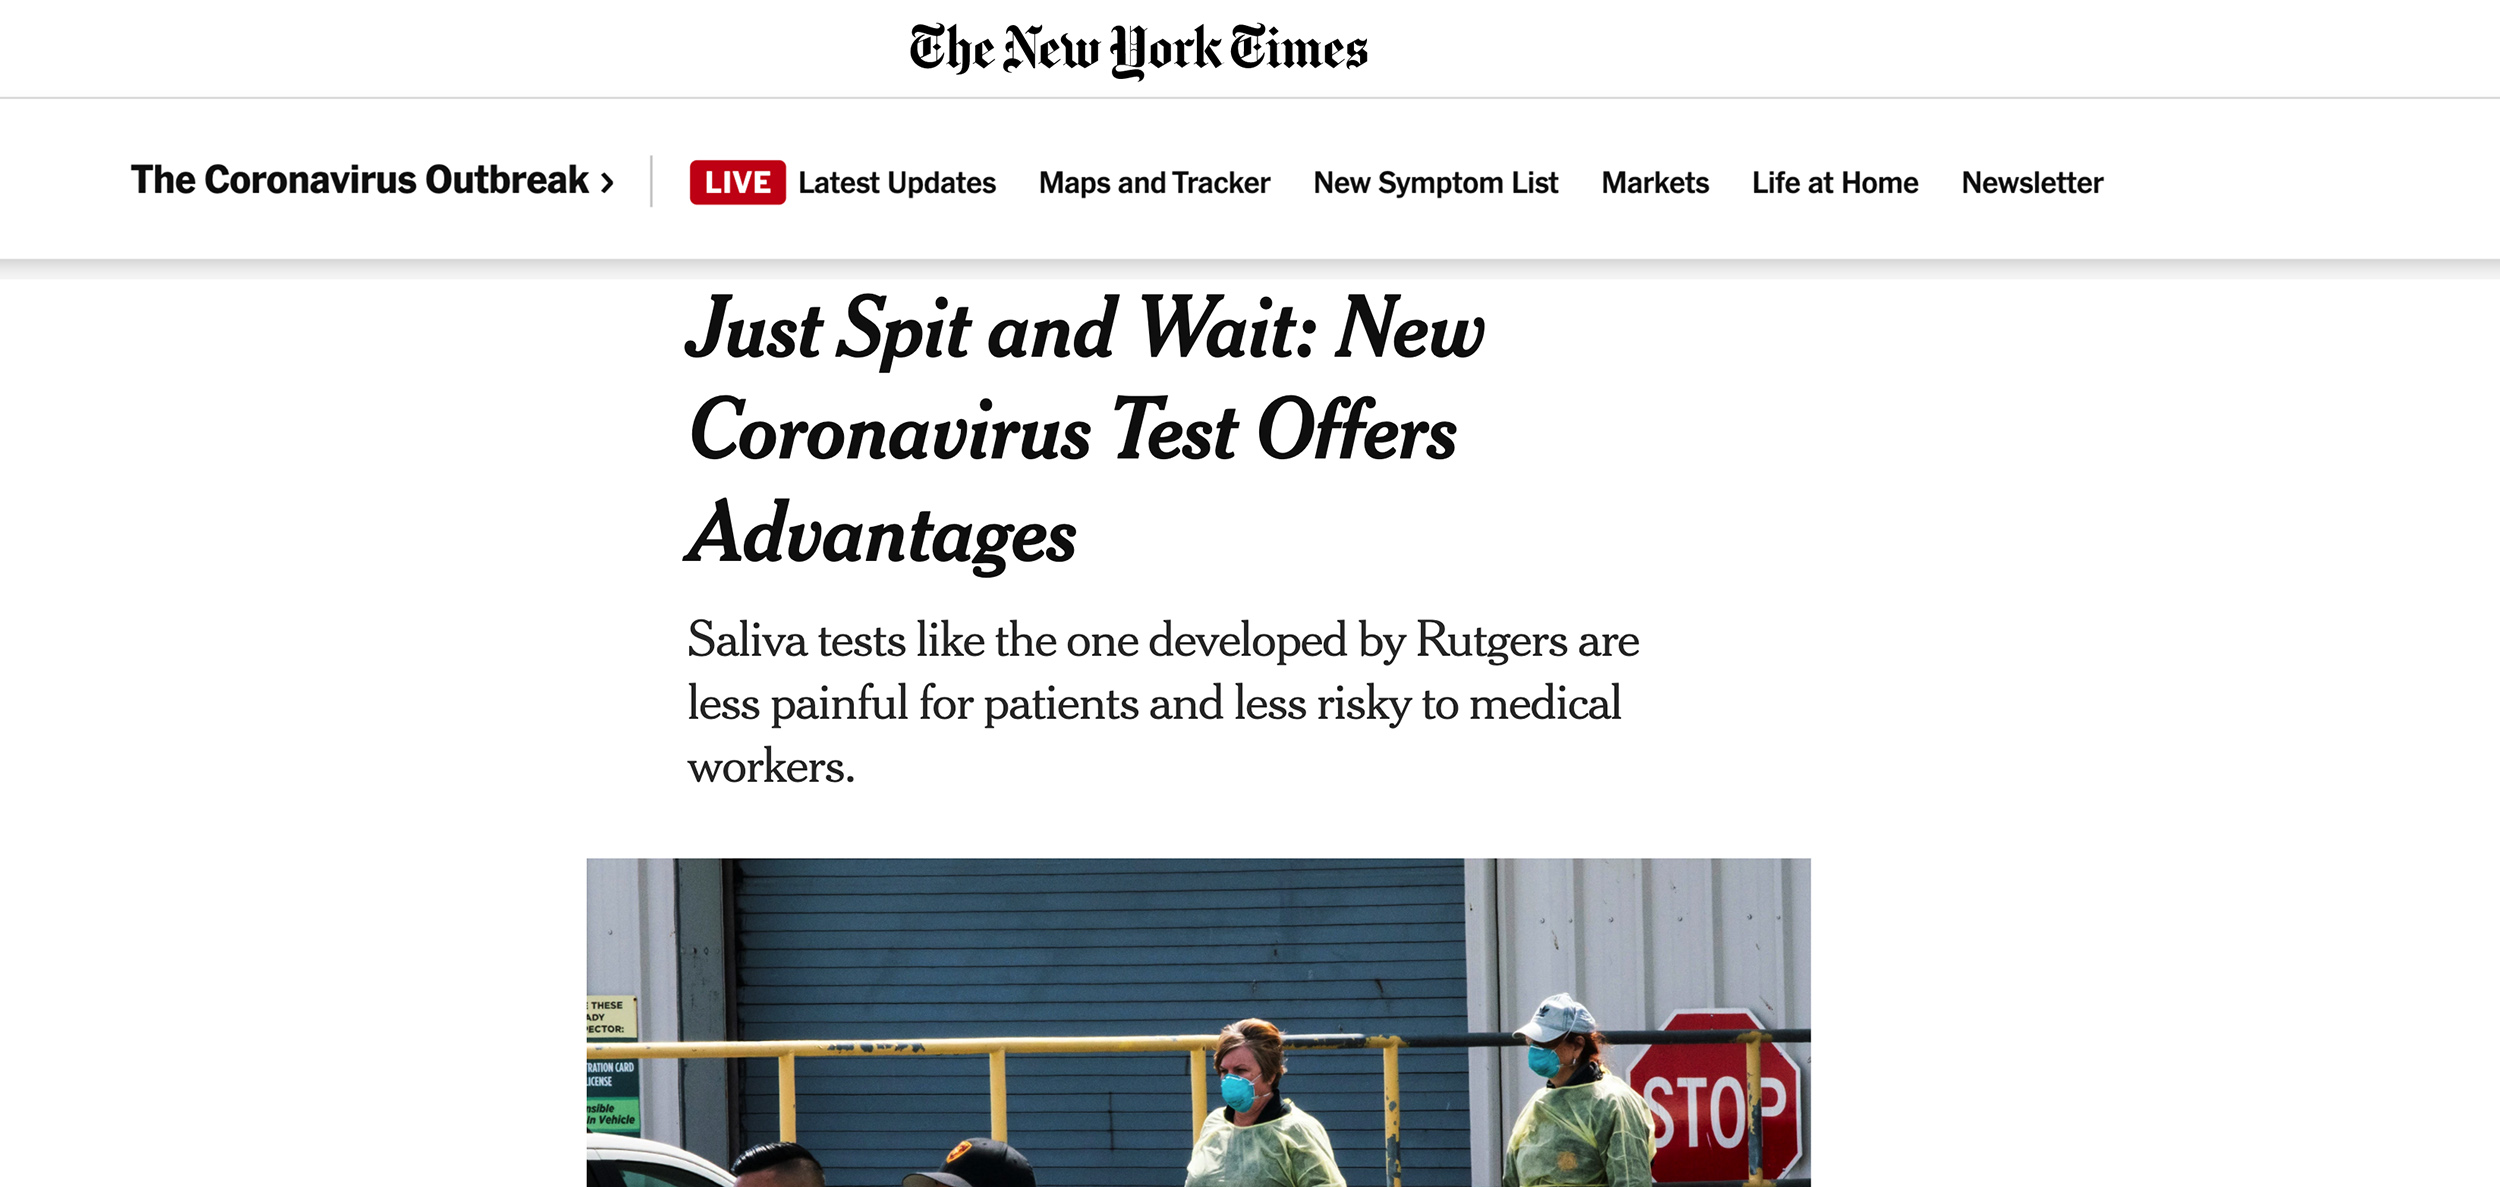 The New York Times- Just Spit and Wait New Coronavirus Test Offers Advantages